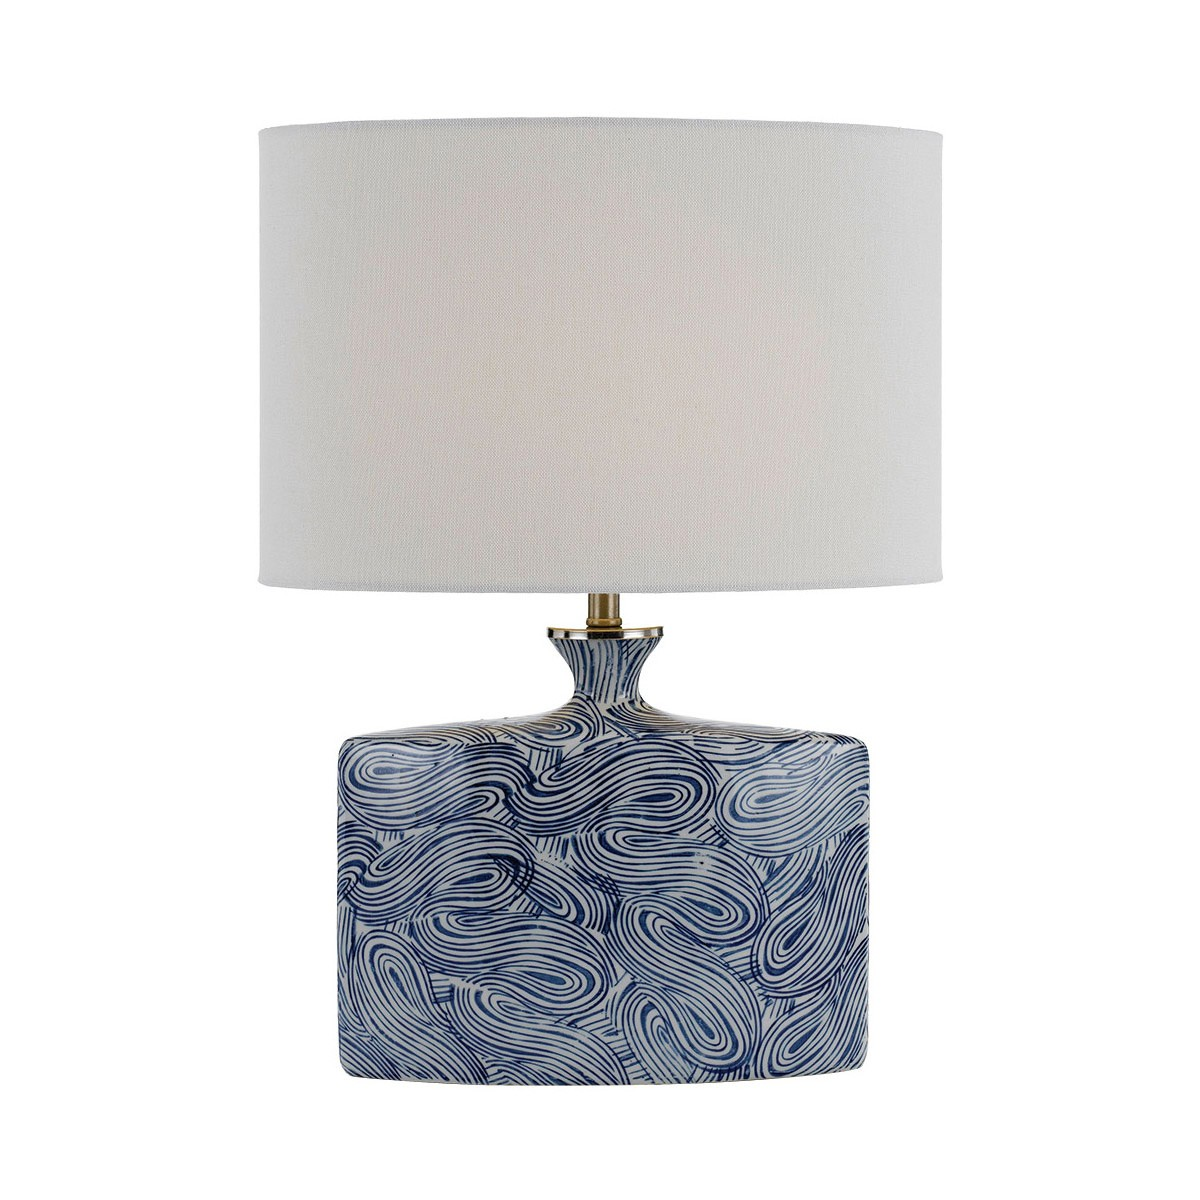 Nakato Ceramic Base Table Lamp